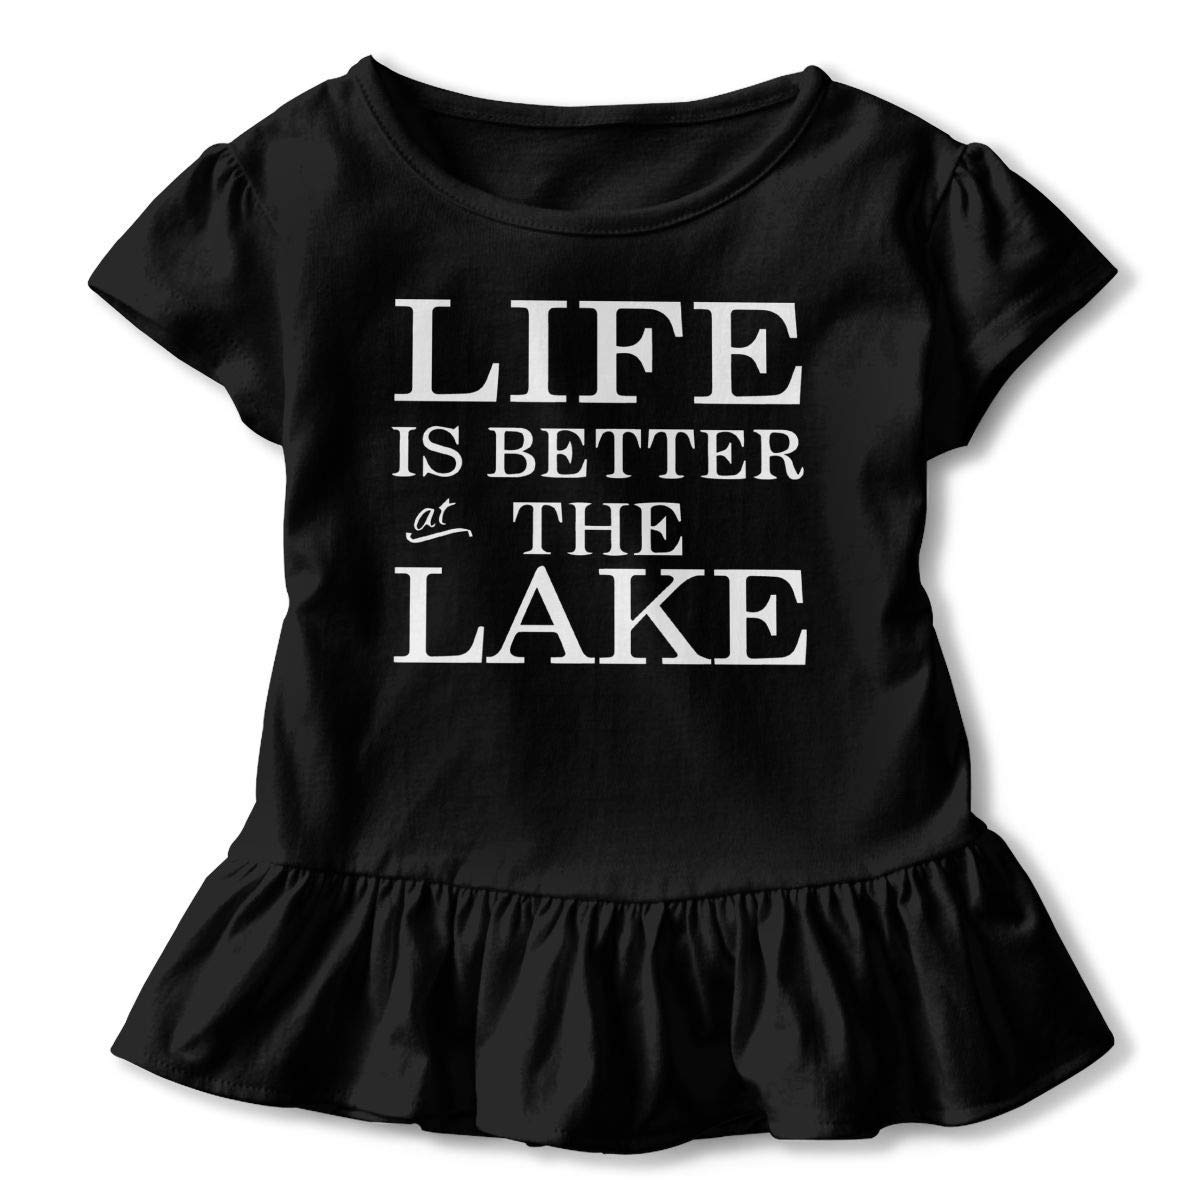 Short-Sleeve Life is Better On The Lake T-Shirts for Children 2-6T Kawaii Sweatshirt with Falbala